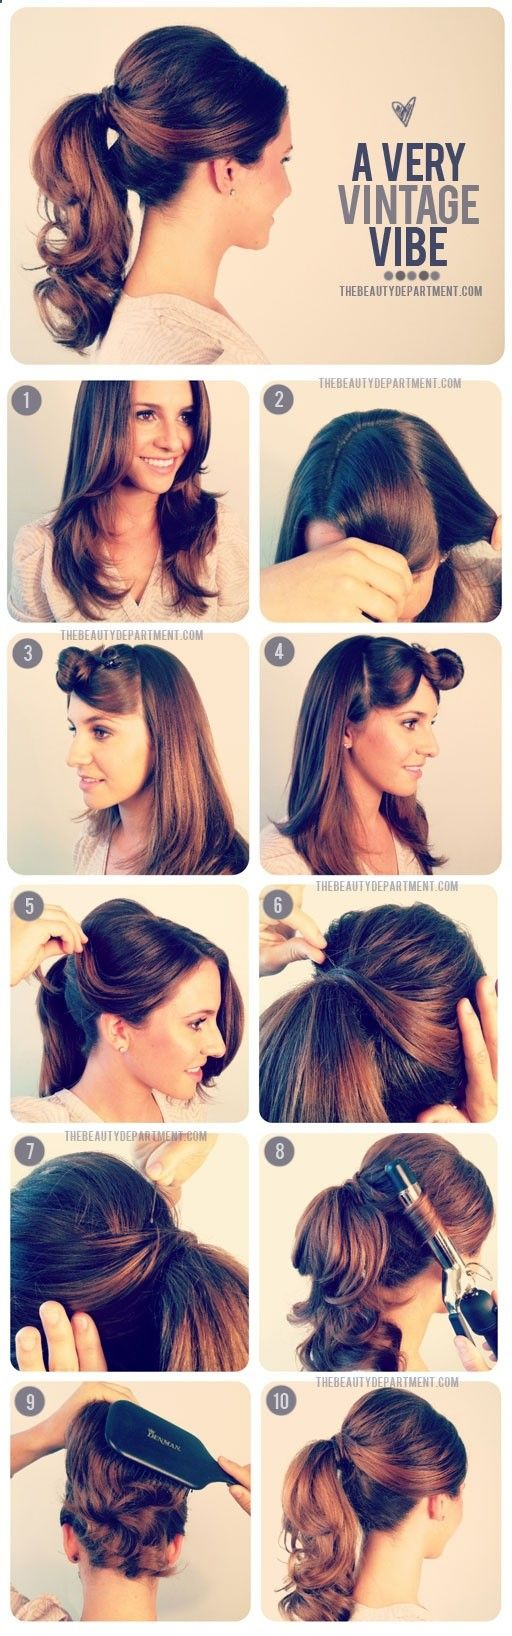 Old Fashioned Pony Tail